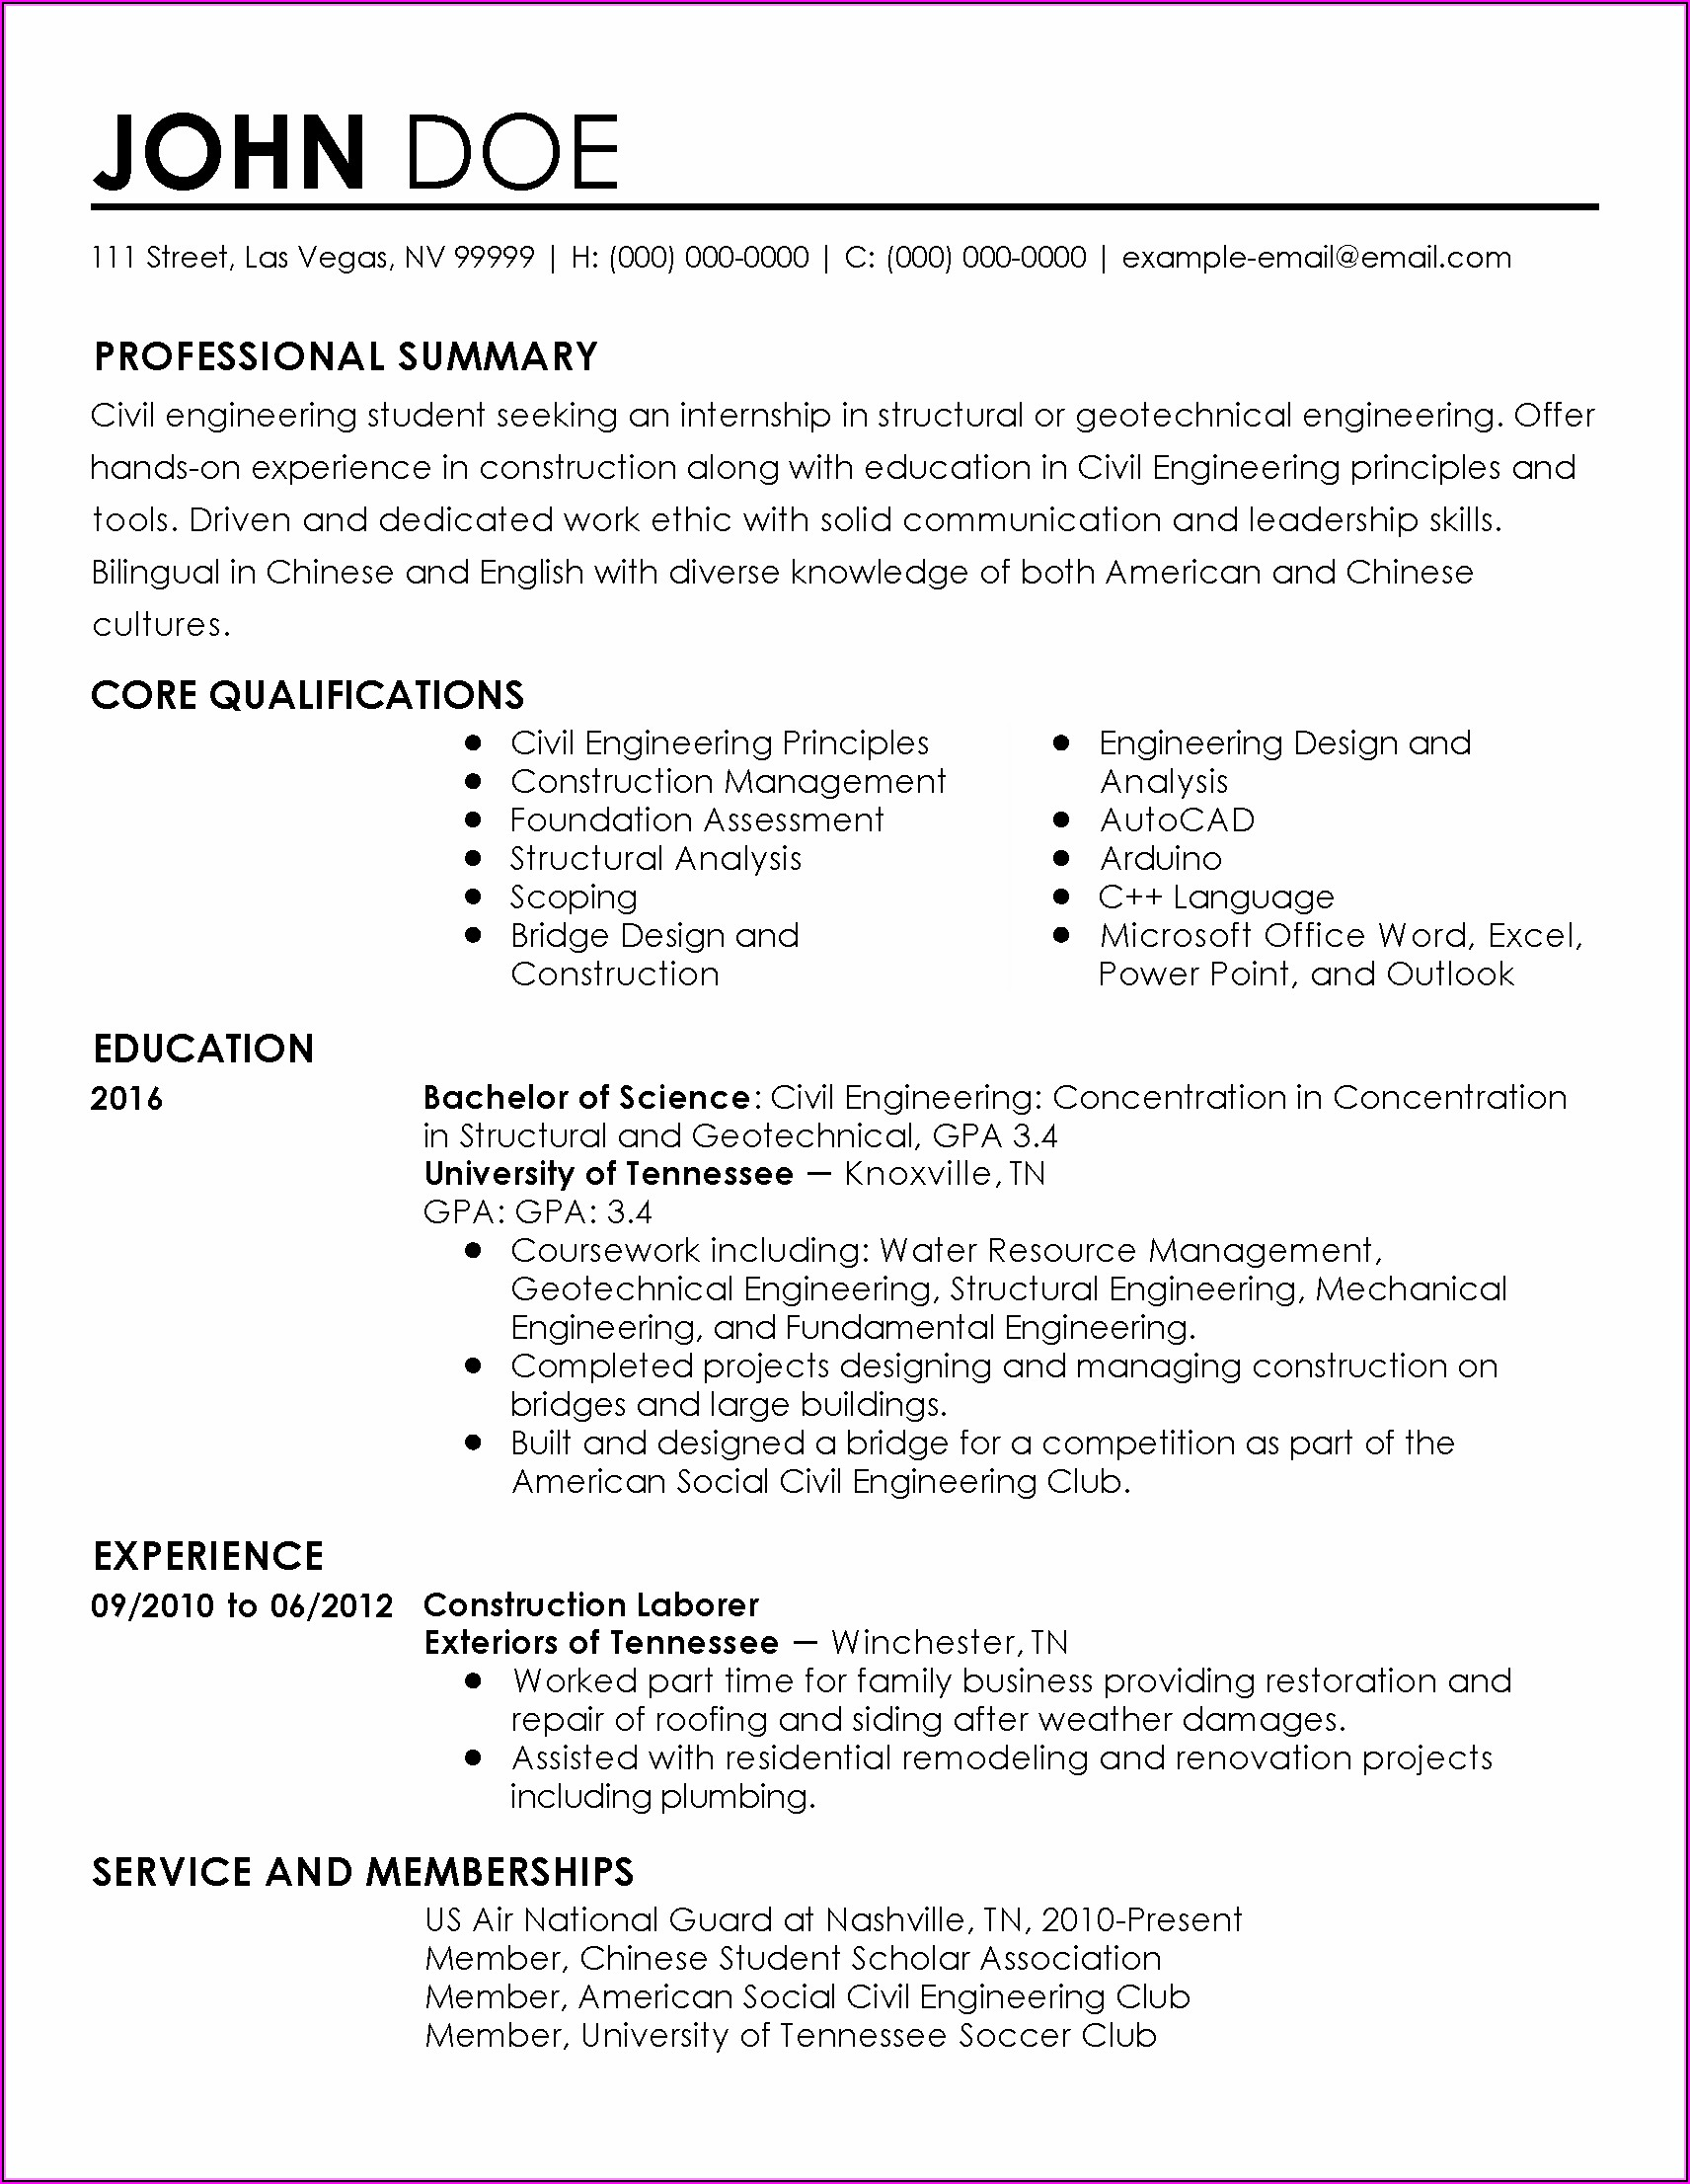 professional nursing resume writing services writers las vegas summary profile examples Resume Nursing Resume Writing Services